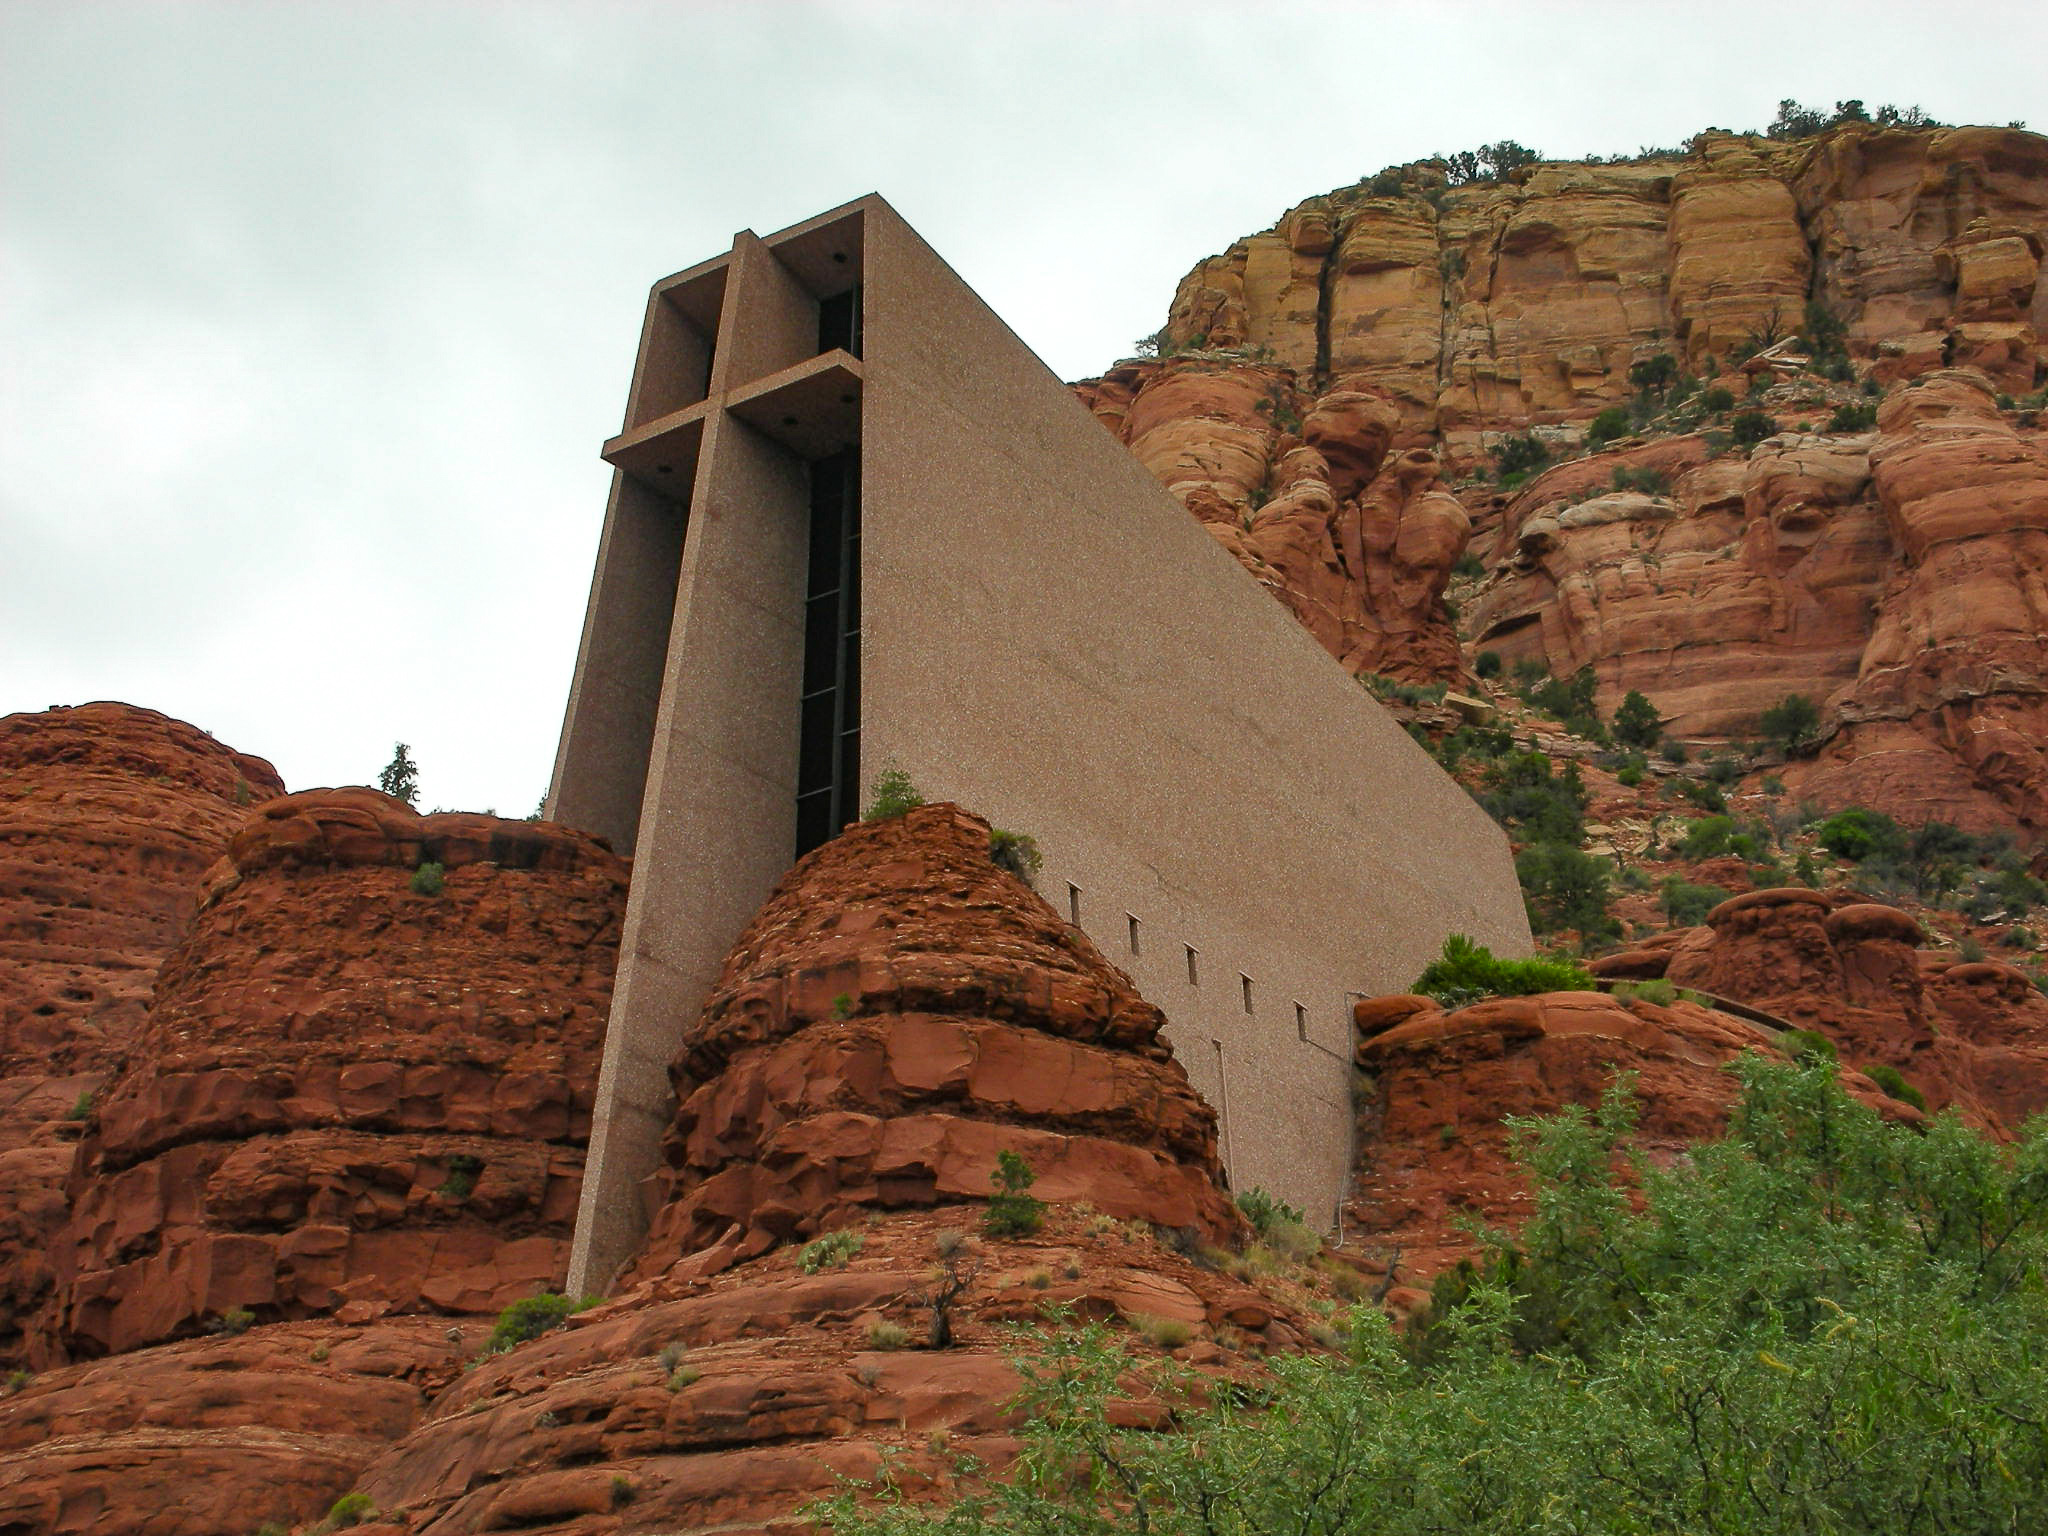 Chapel of Holy Cross, Sedona - Visit all 50 states - Best things to do in each state